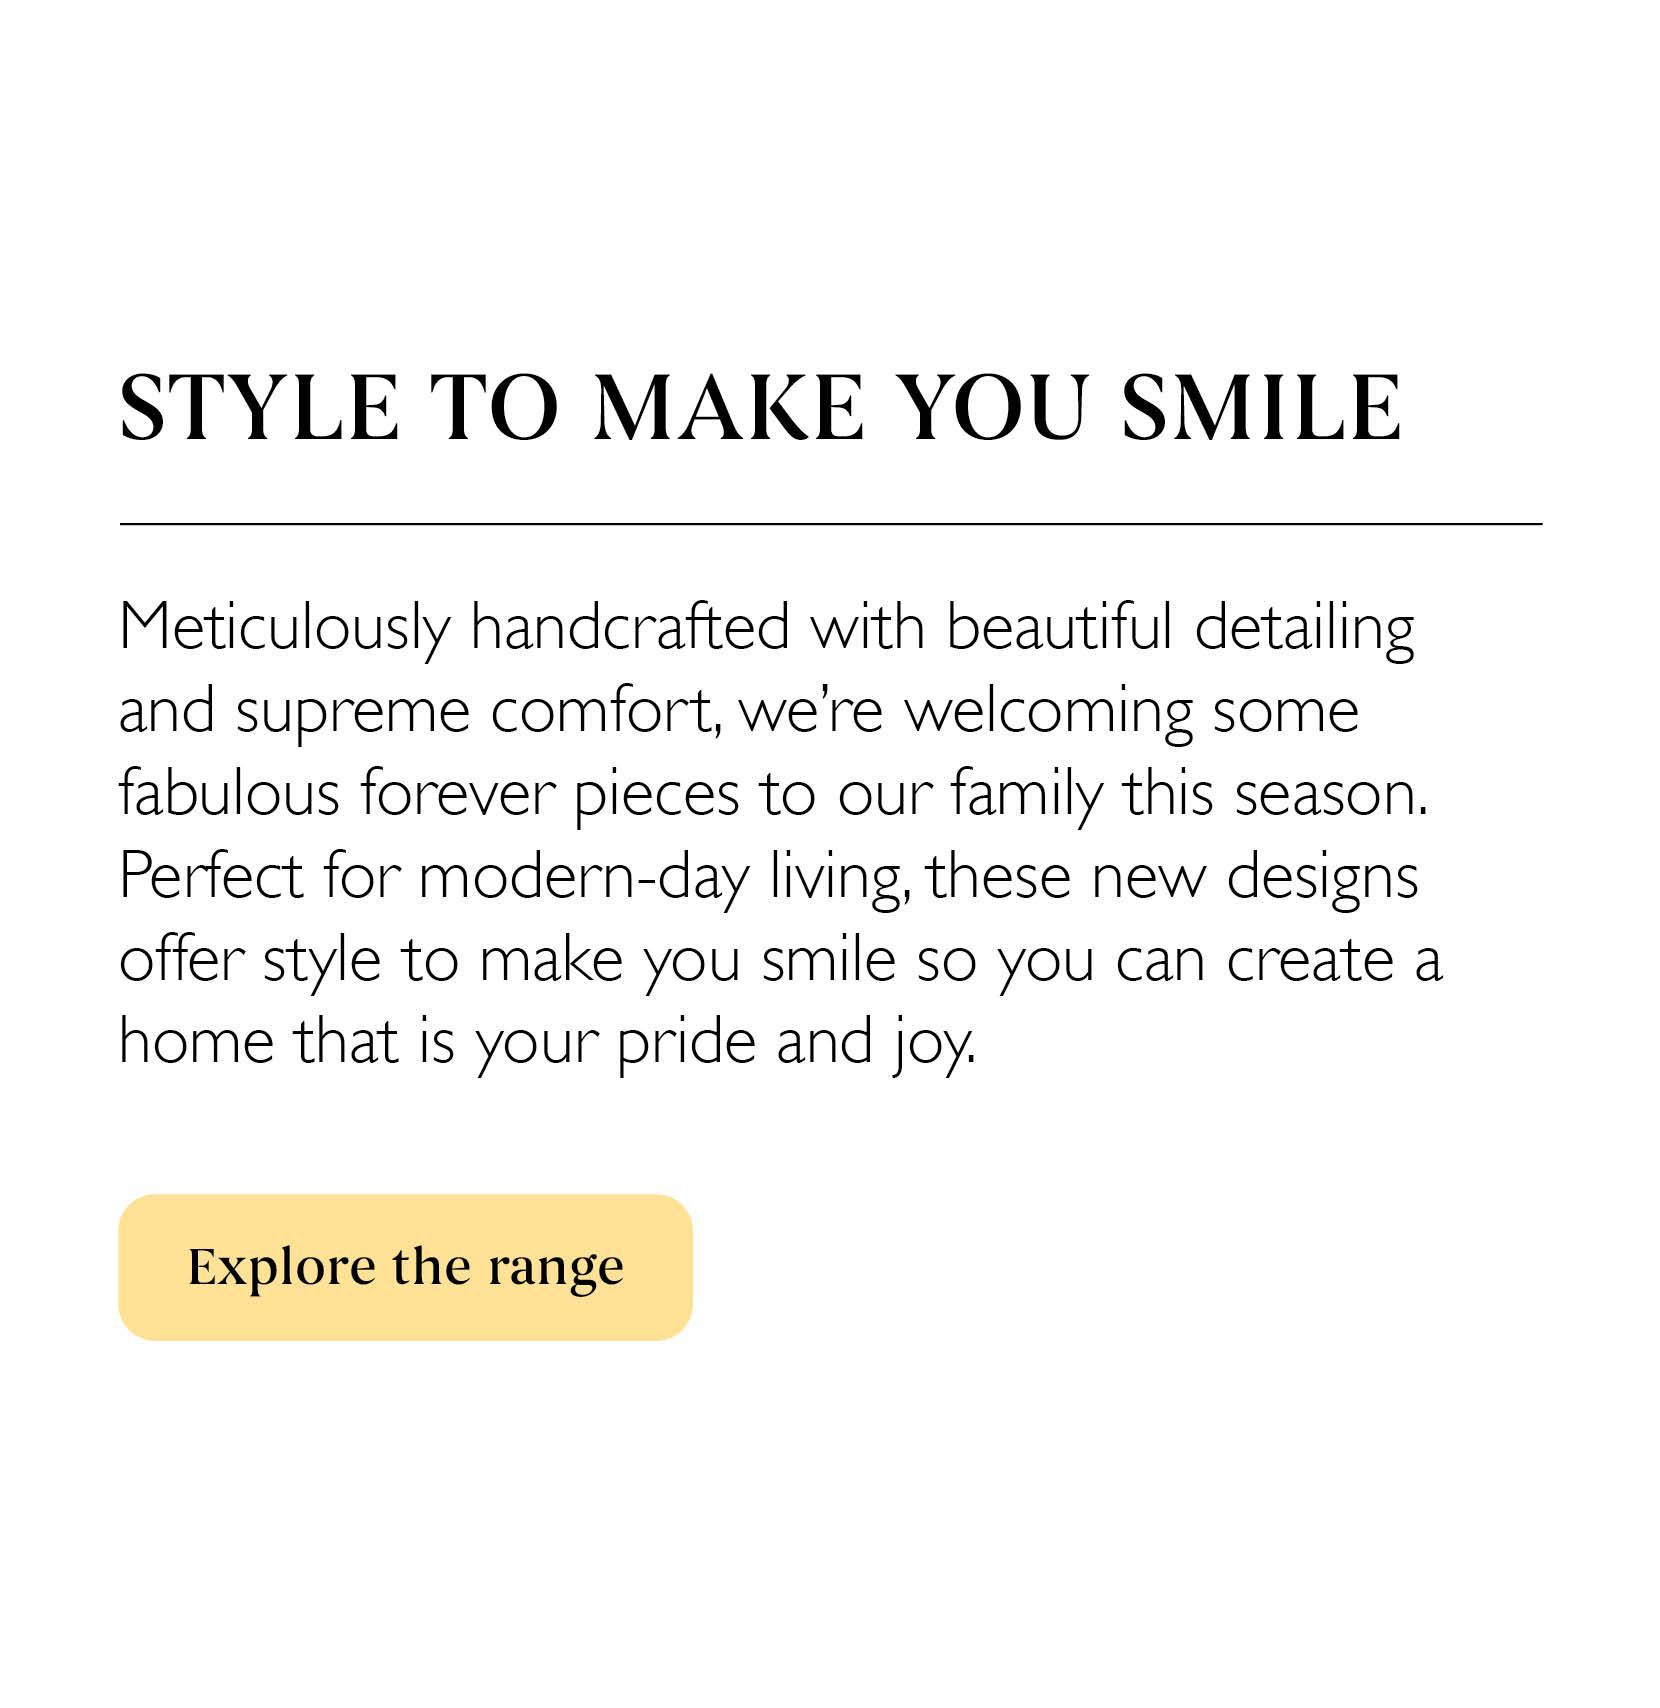 Spring/Summer 21 - Style to make you smile; Meticulously handcrafted   Explore the range